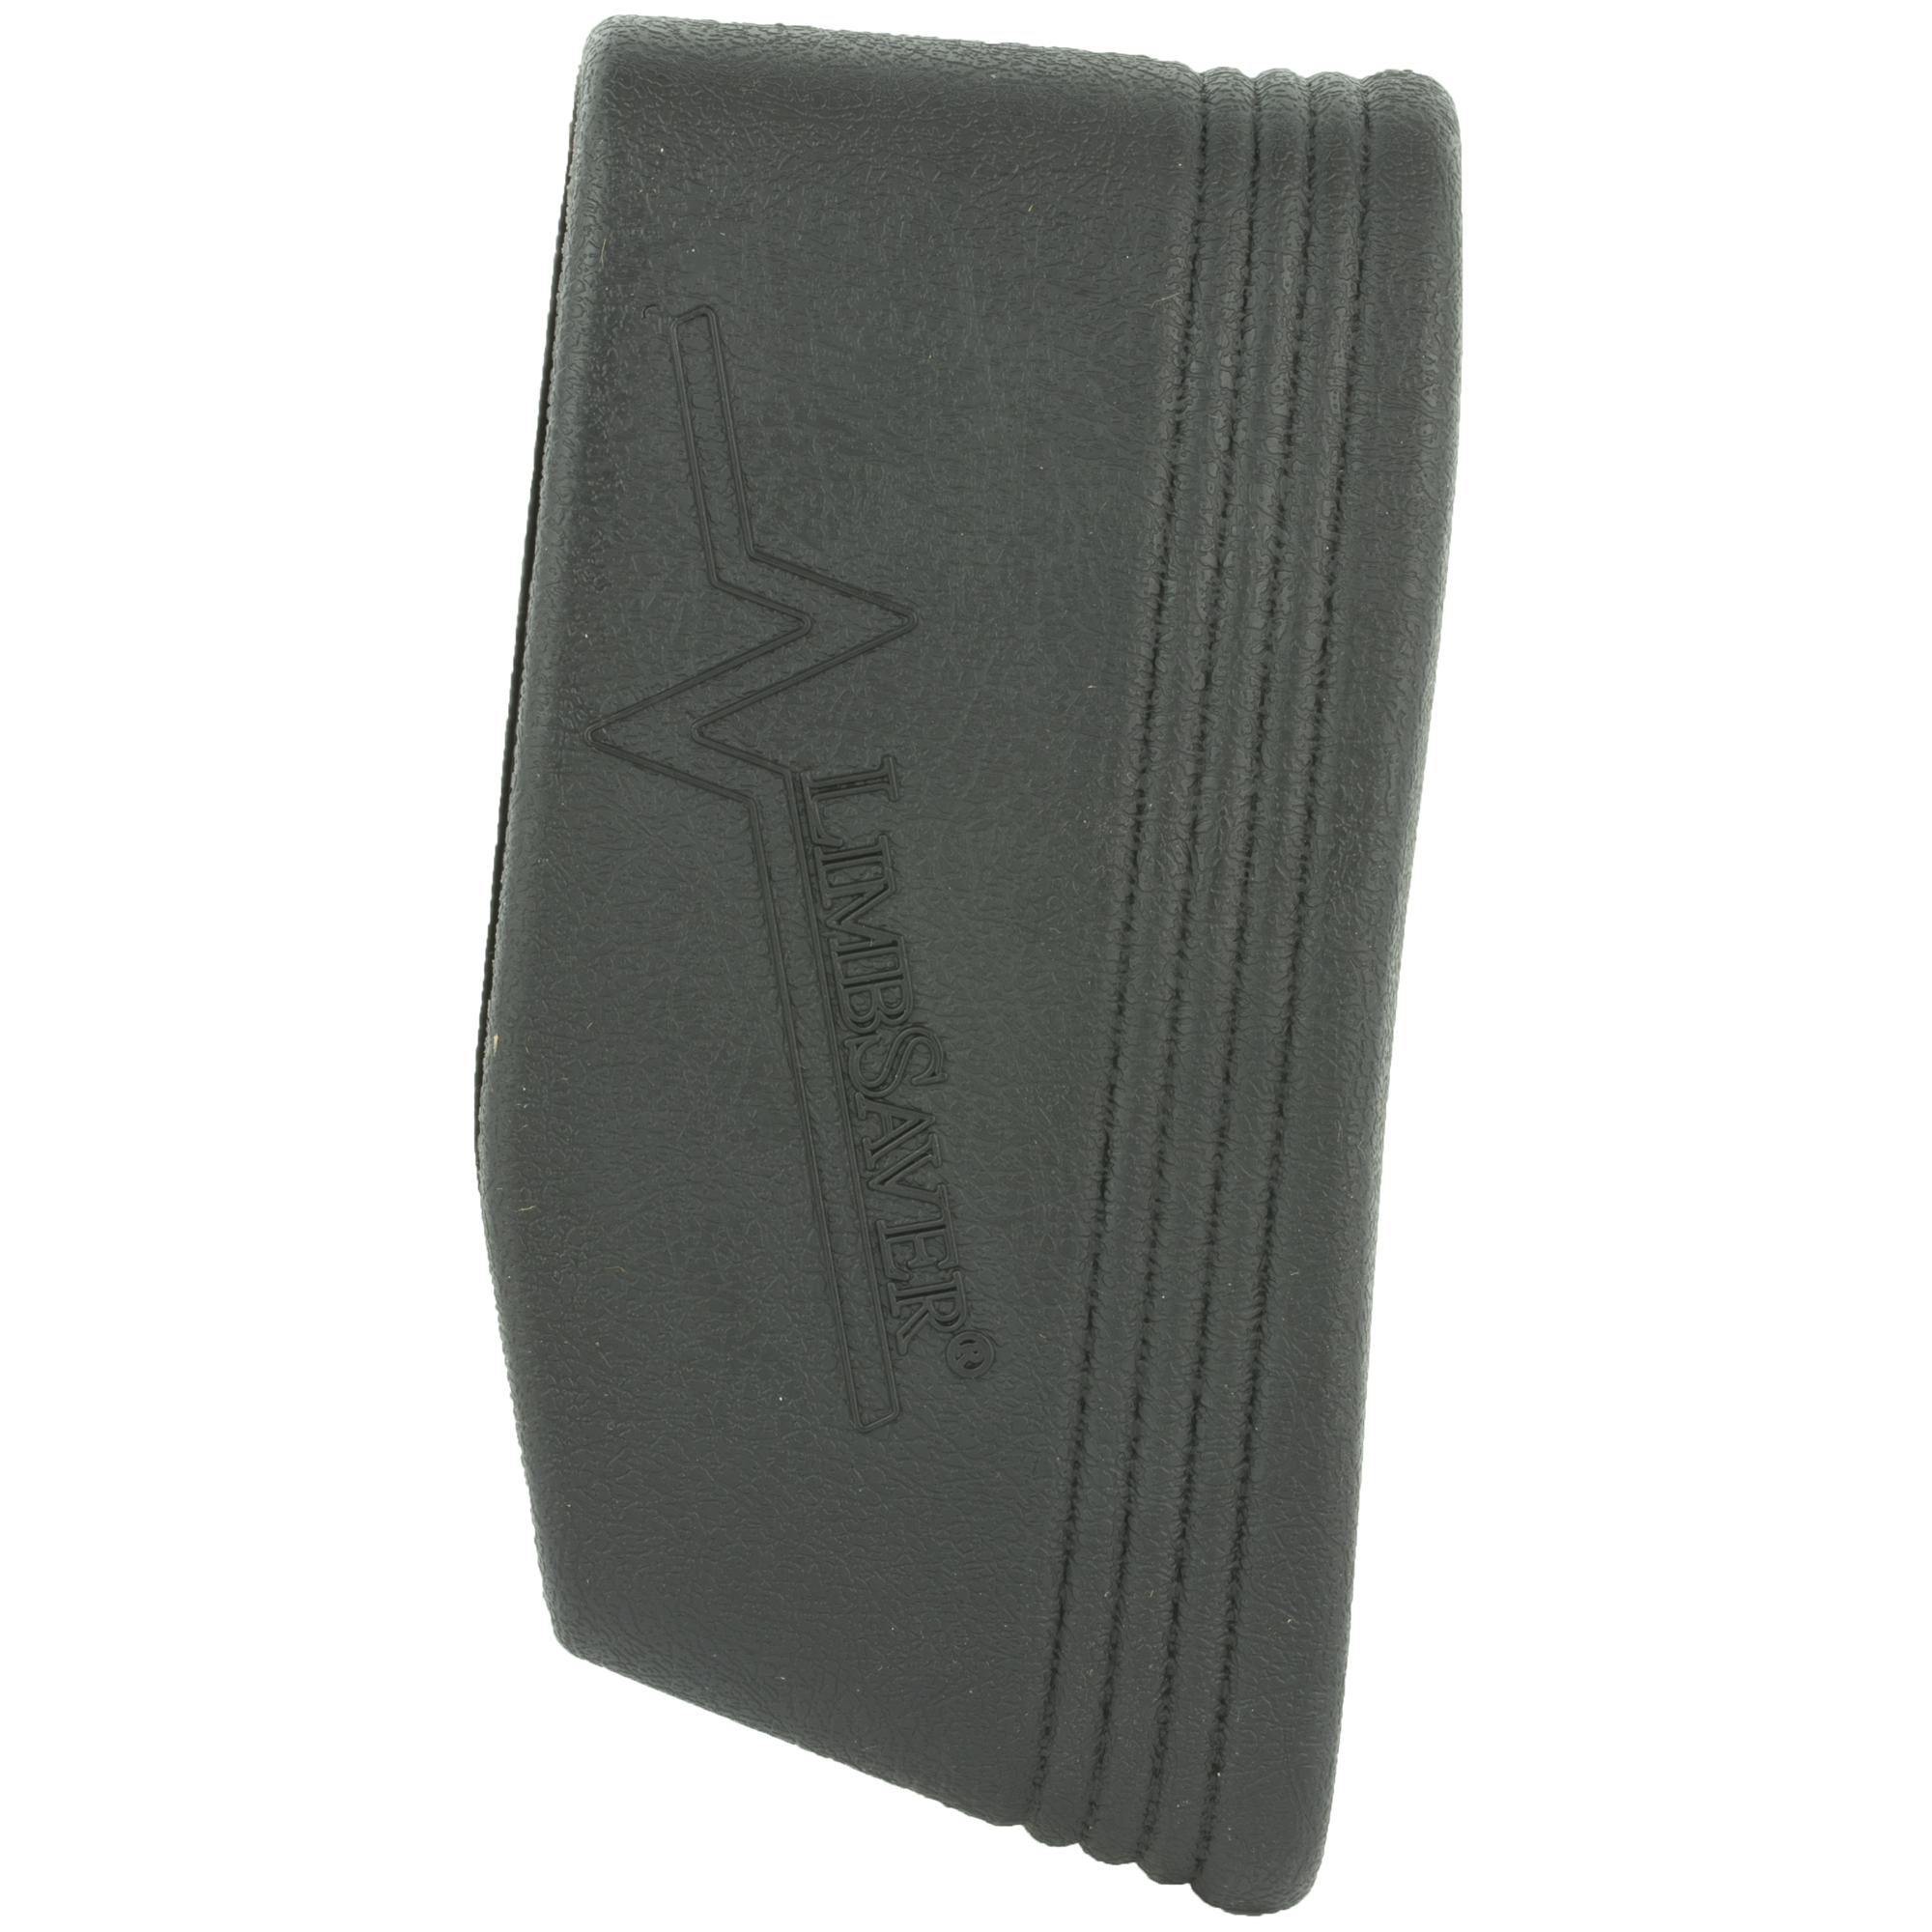 """The easiest way to reduce felt recoil for hard-to-fit stocks"""" the Limb Saver Slip-On Recoil Pad provides the same shooting comfort as LimbSaver's precision fit pads. Simply slip the pad over the stock of most rifles"""" shotguns"""" and muzzleloaders for a recoil reduction of up to 50 percent. The recoil pad helps increase accuracy of follow-up shots and you'll enjoy increased control for maximum stability. Designed to slip over existing firearm stocks without any modifications"""" it will work with or without factory recoil pads. It's made from LimbSaver's proprietary NAVCOM technology (Noise and Vibration Control Material)"""" which effectively absorbs a wide range of frequencies to dissipate energy and vibration. Proudly engineered and hand-made in the USA"""" Limb Saver products are widely used by outdoor enthusiasts"""" military"""" law enforcement"""" and more."""